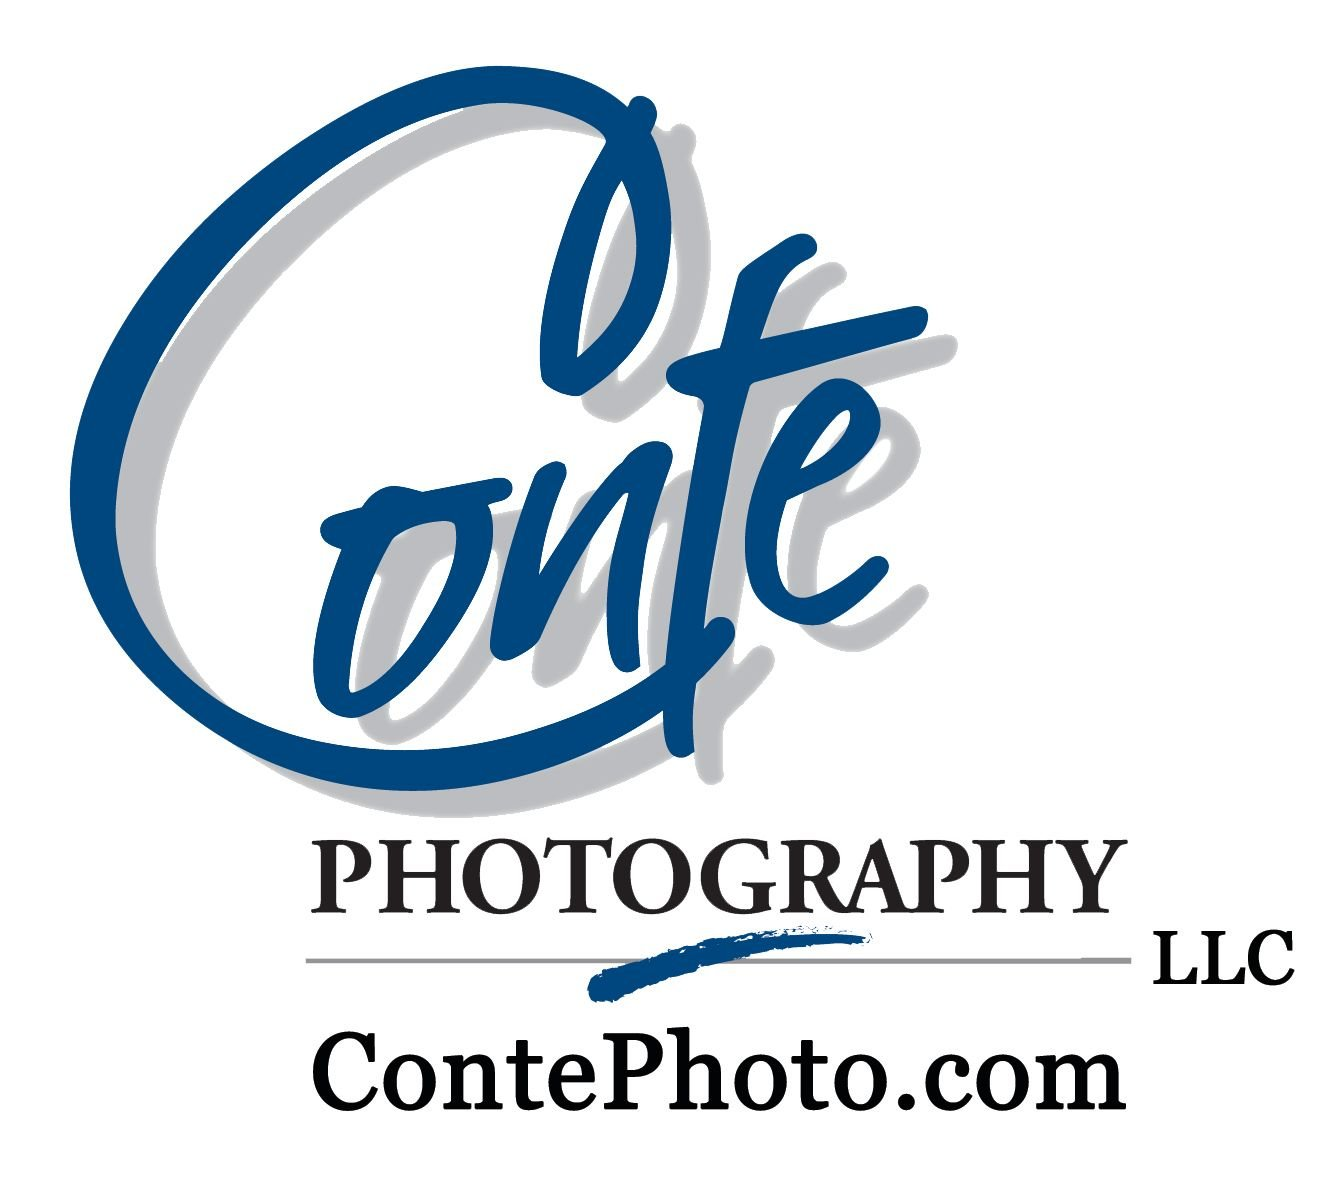 Conte Photography LLC